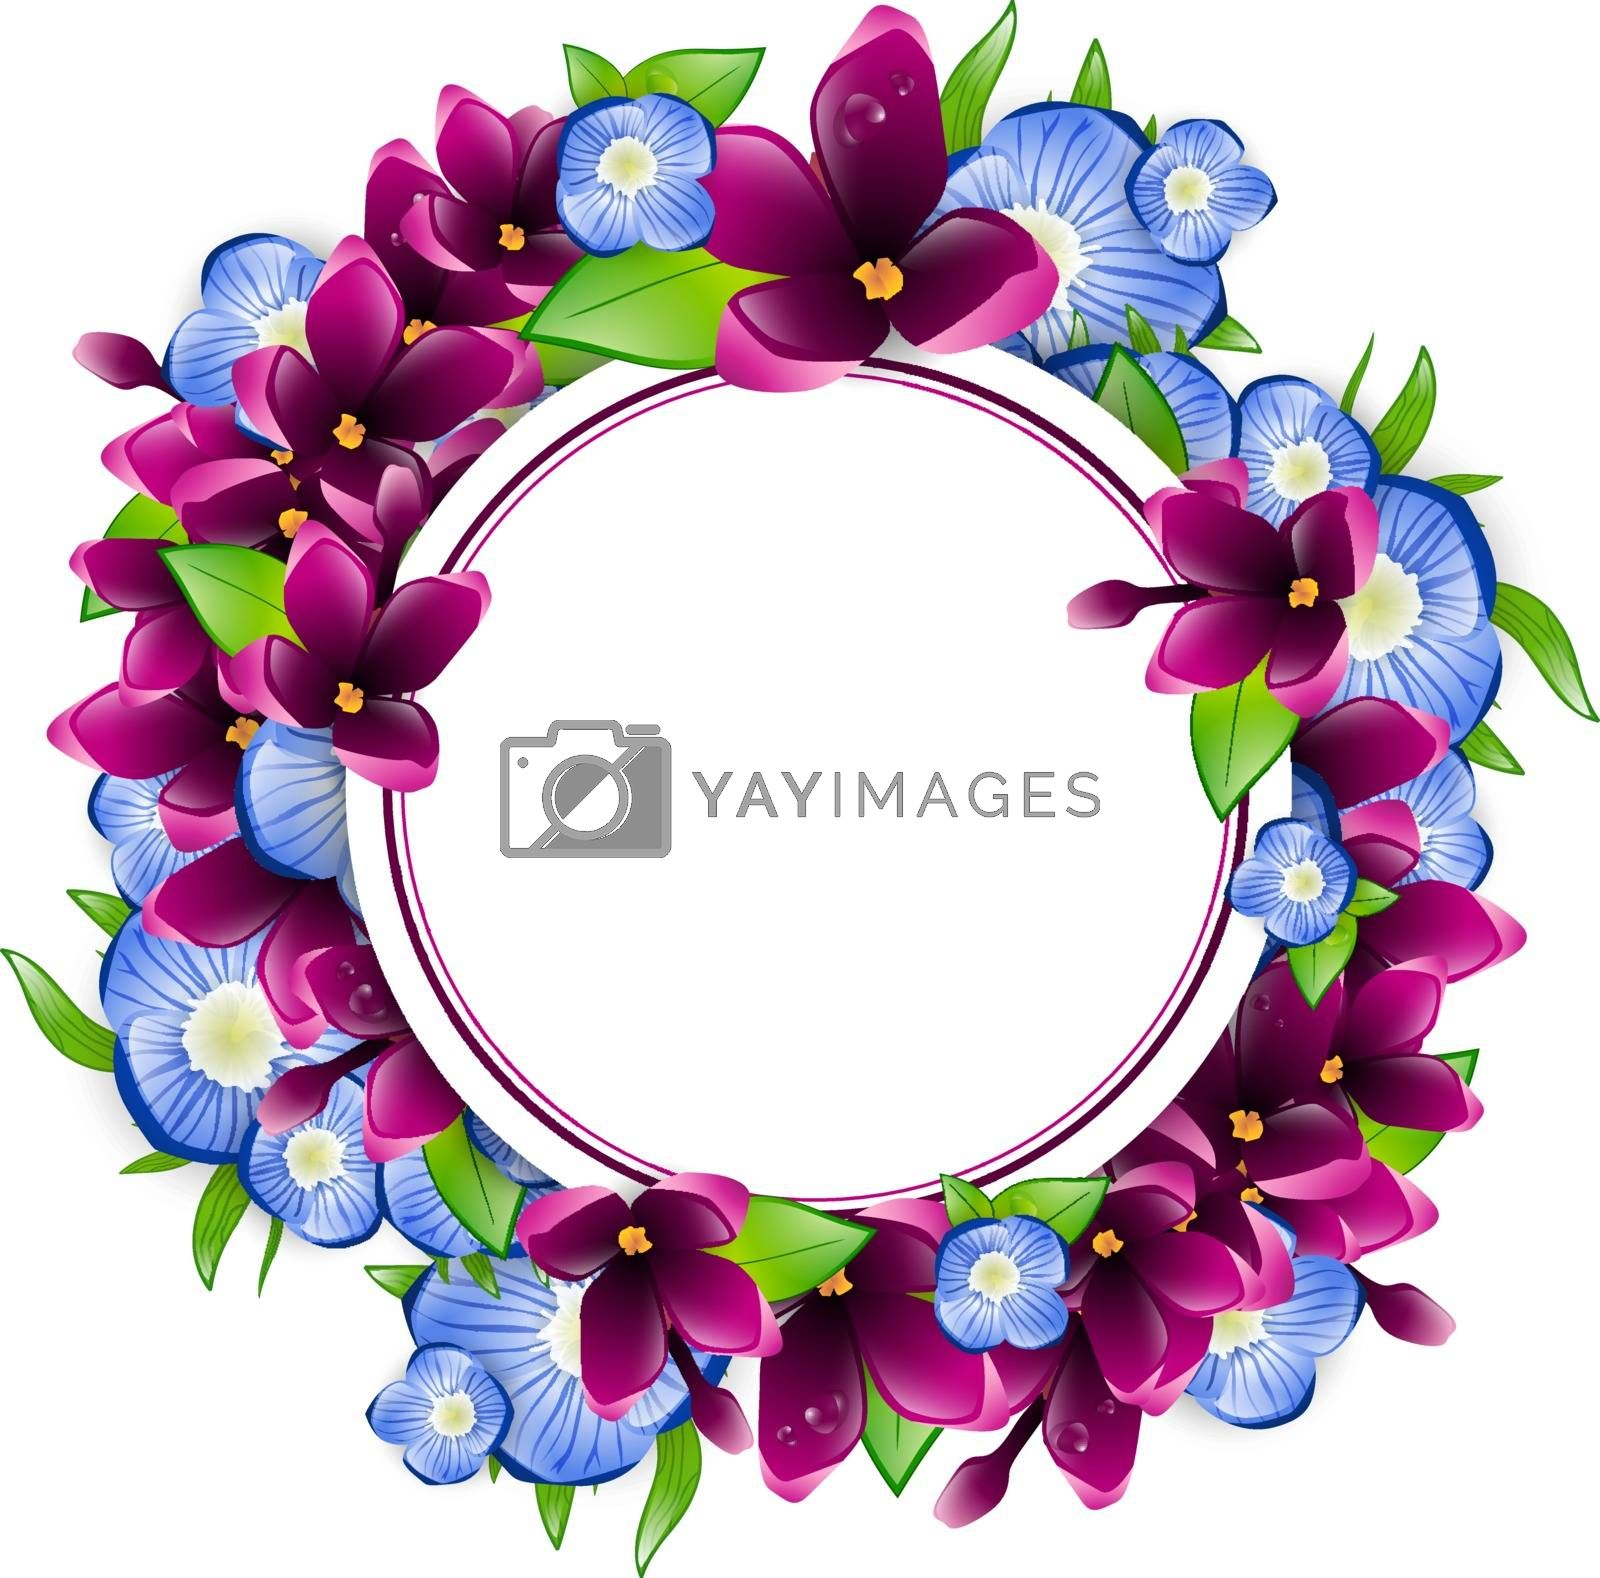 Illustration of Spring Wet Lilac and Forget-me-not Flower Round Frame, Copyspace